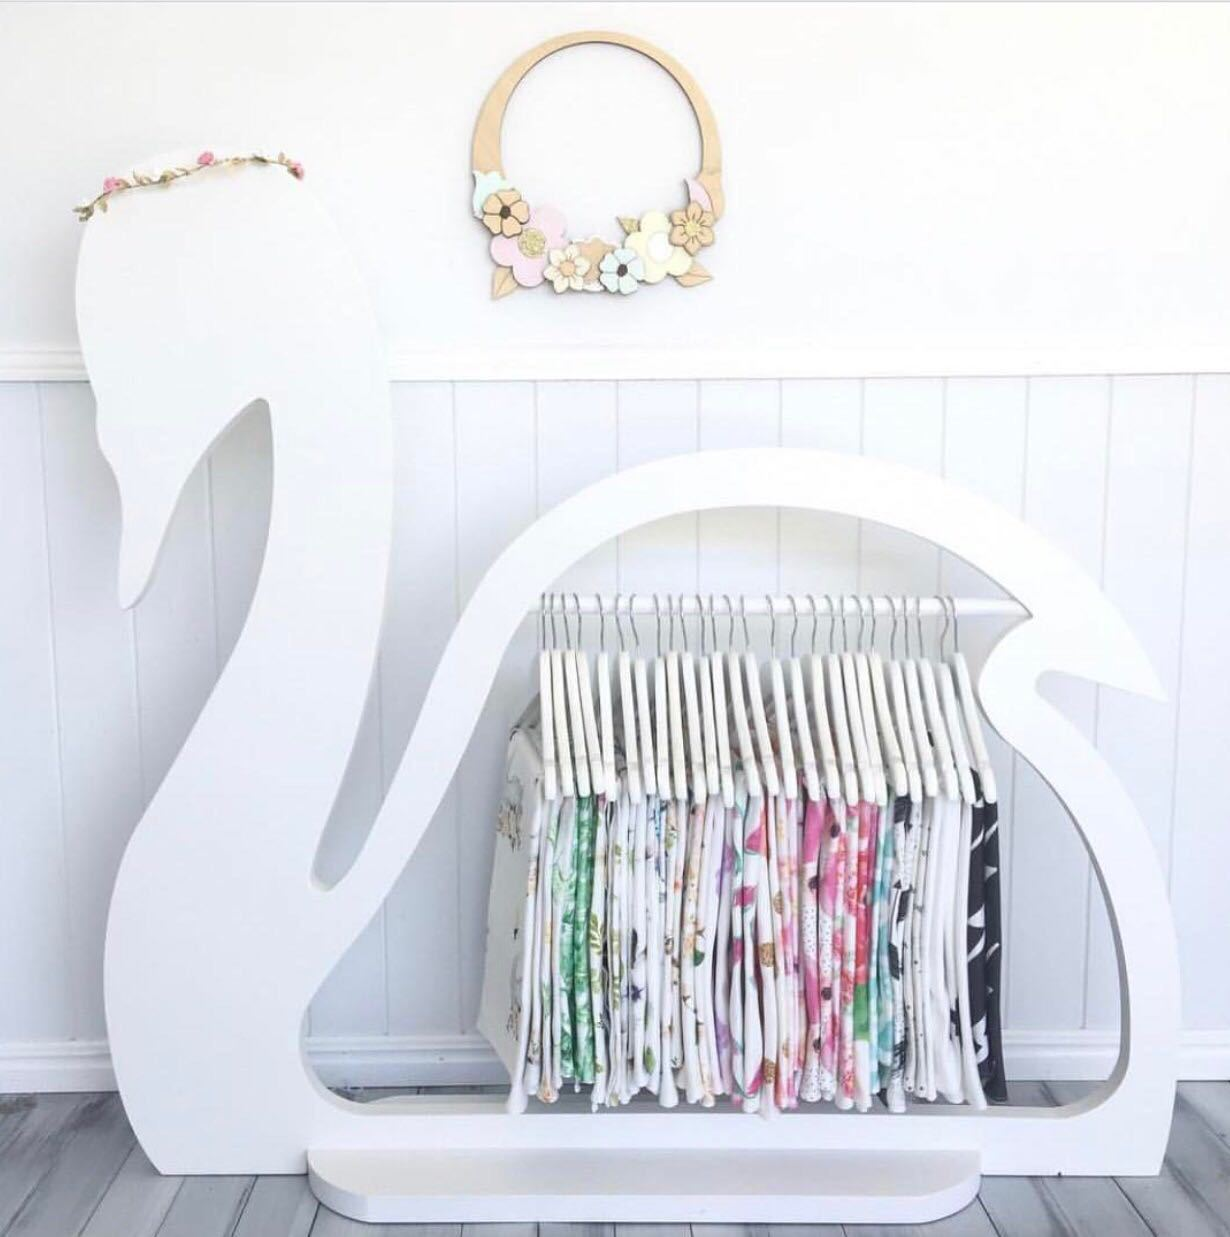 Hight Quality Wooden Swan Clothes Drying Rack Hanging